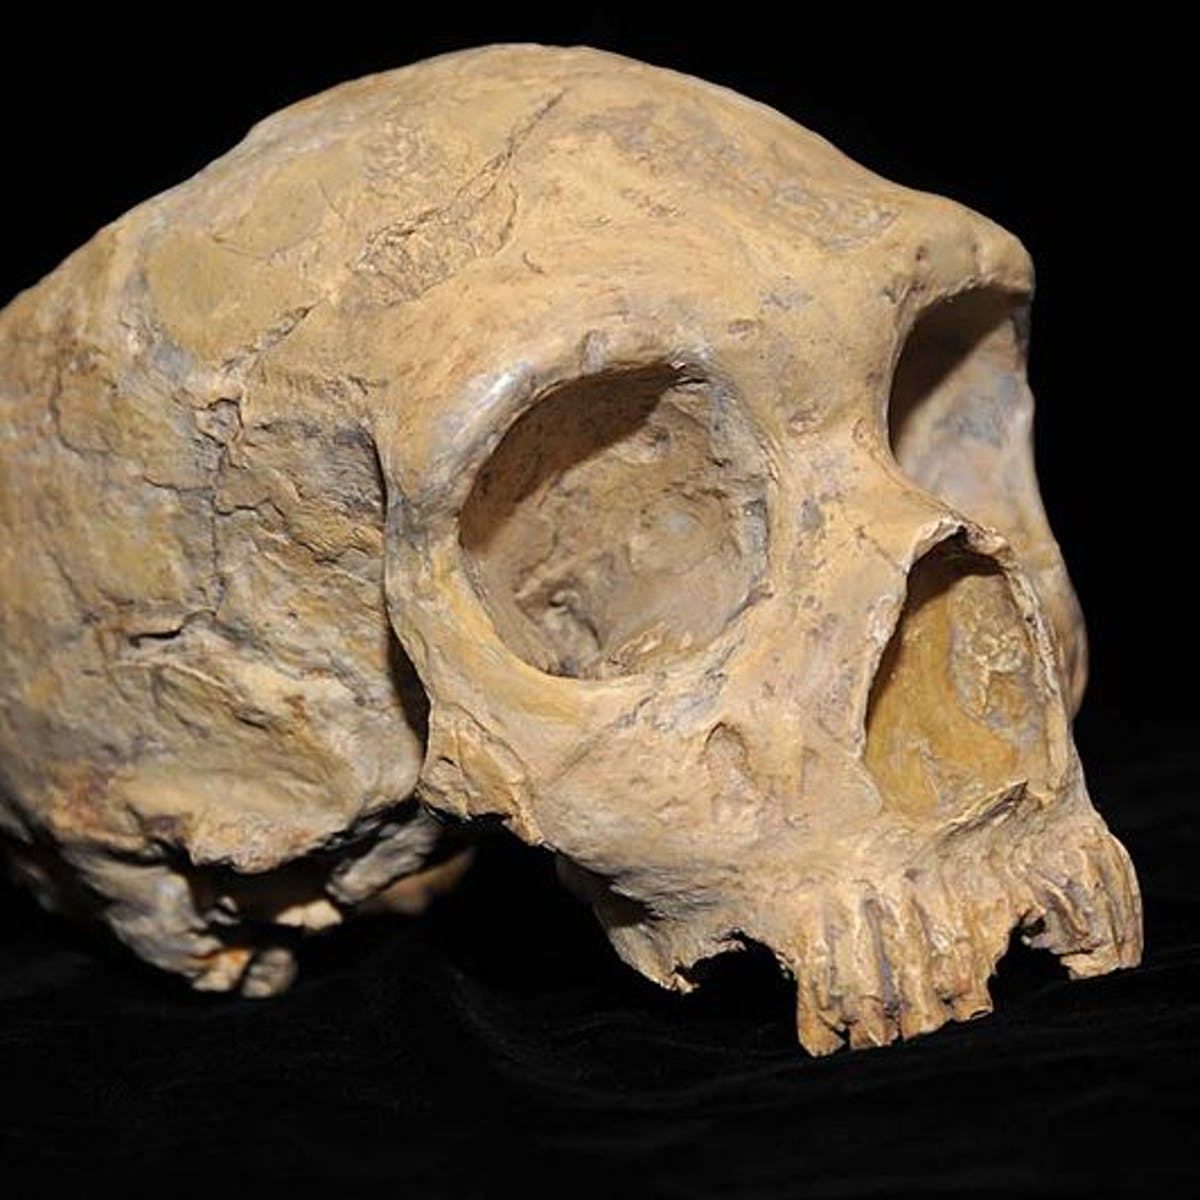 Key Differences in the Neanderthal Brain Reveal an Explanation for Extinction